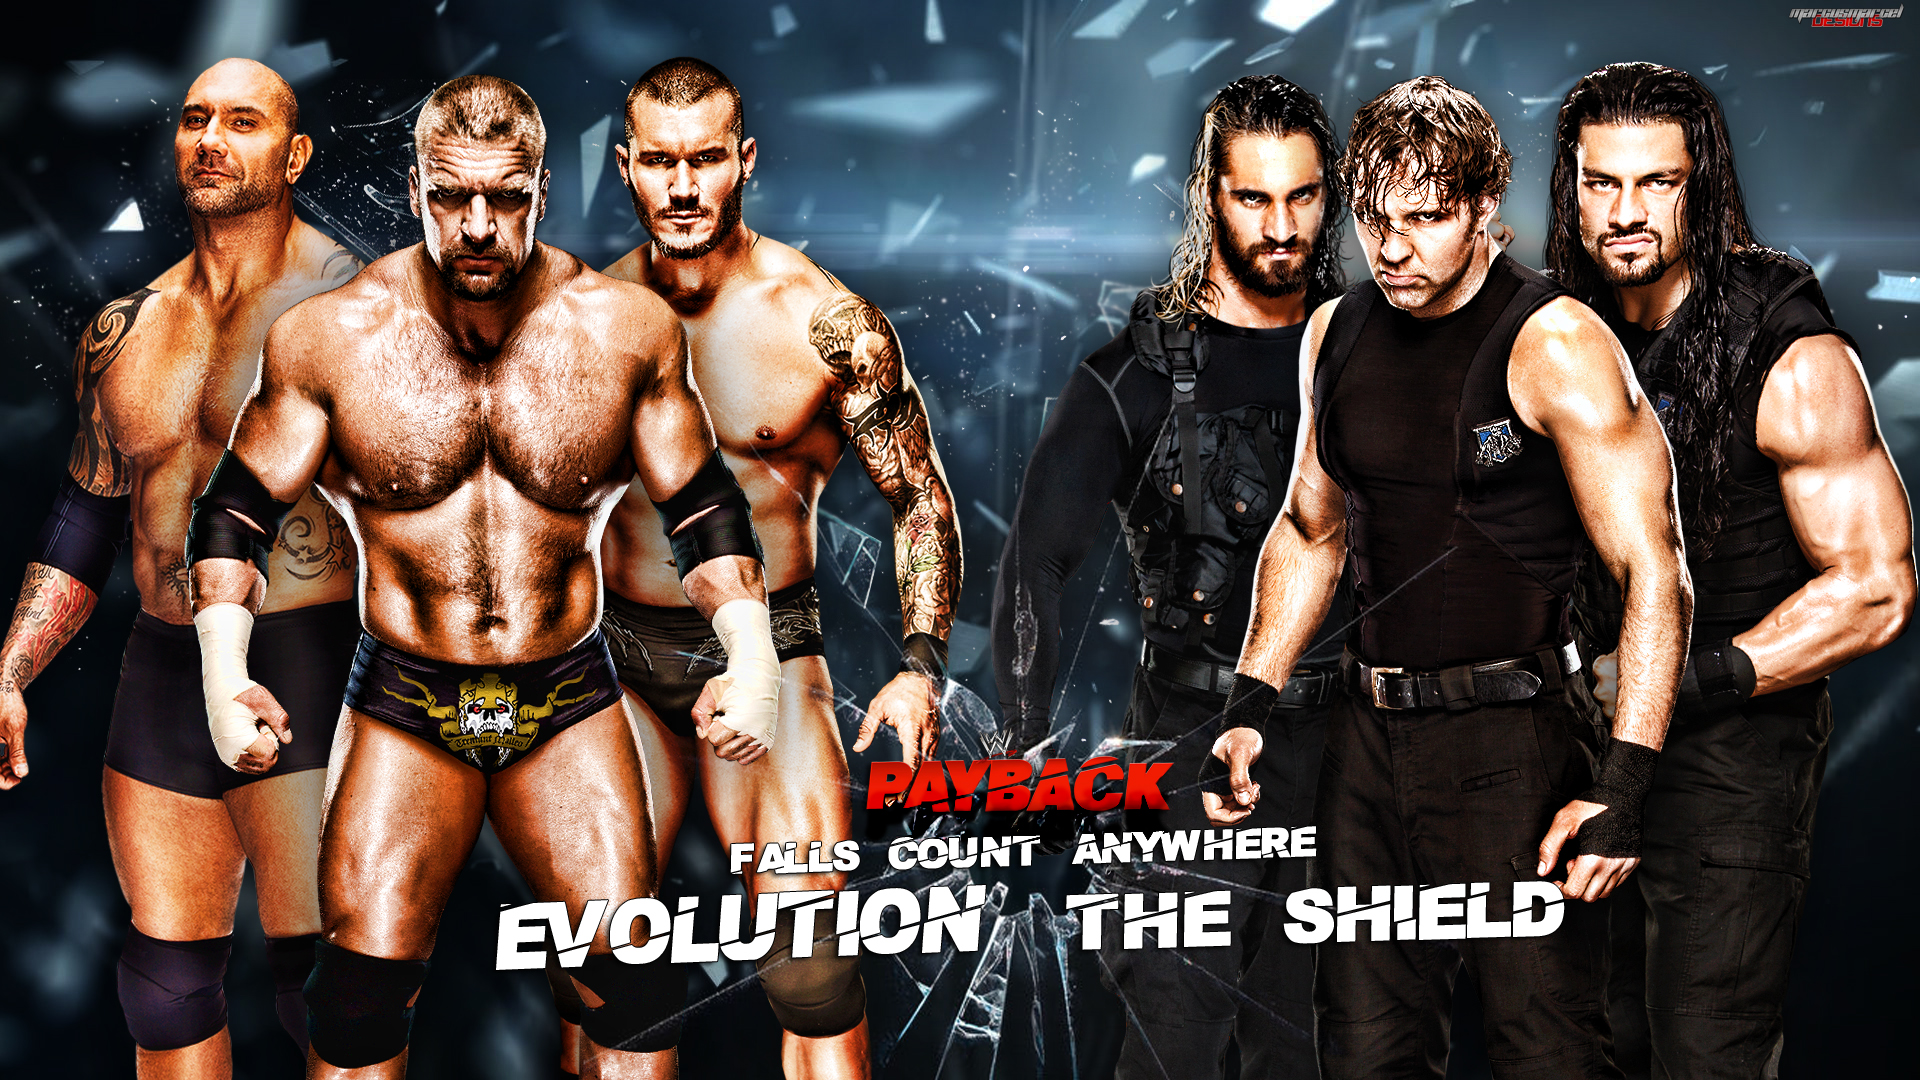 Download Wwe Evolution Wallpaper Evolution by marcusmarcel 1920x1080